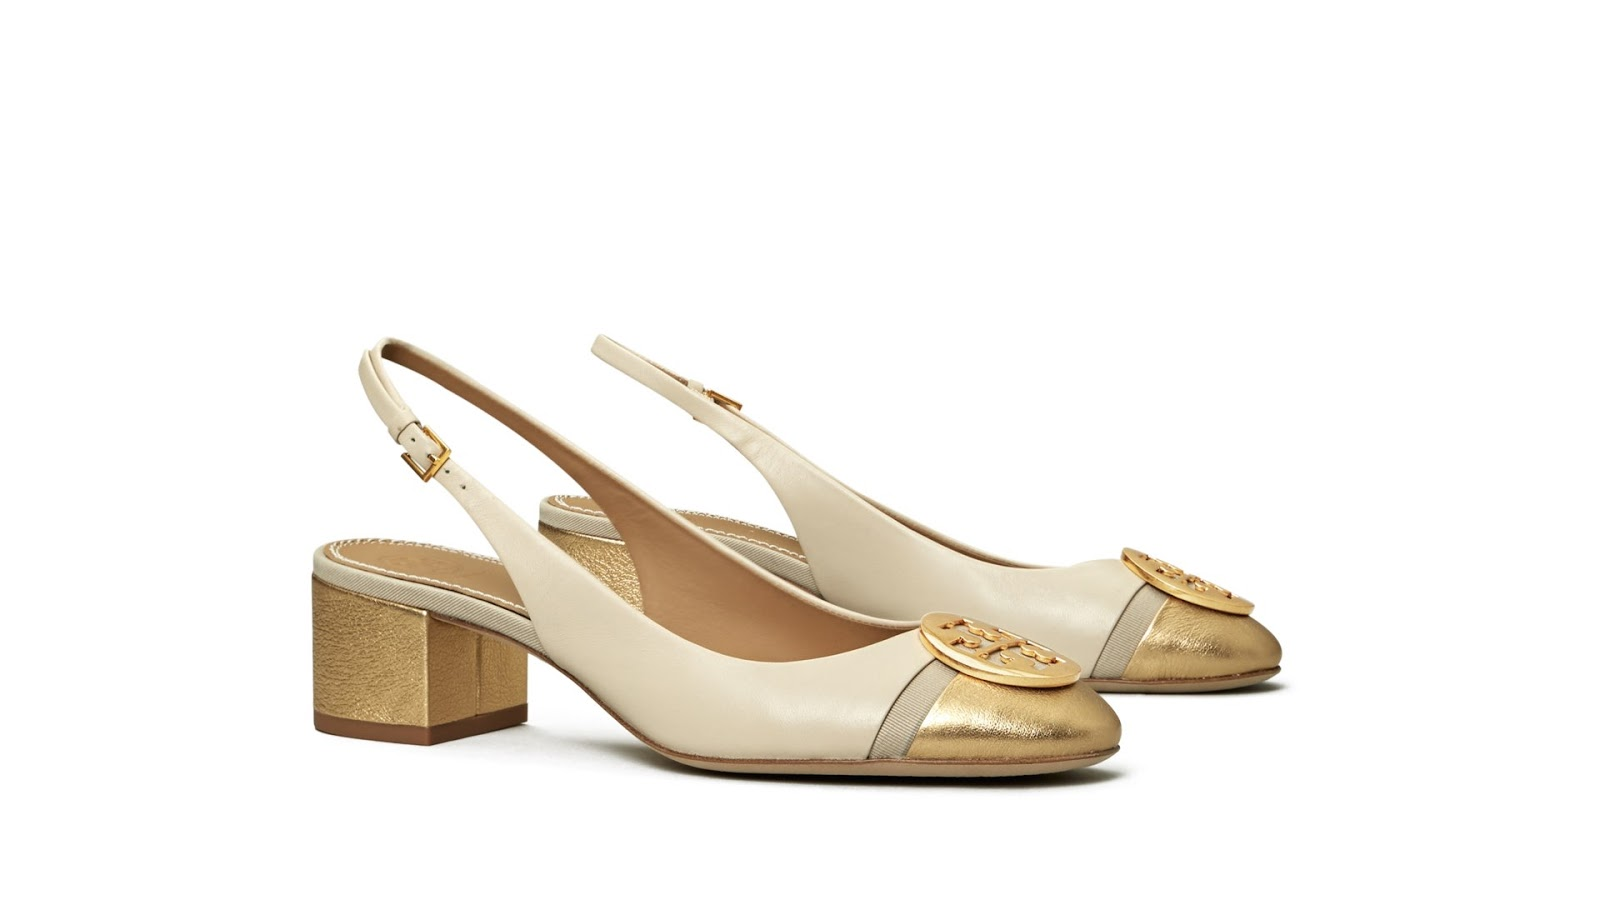 Tory Burch party shoes